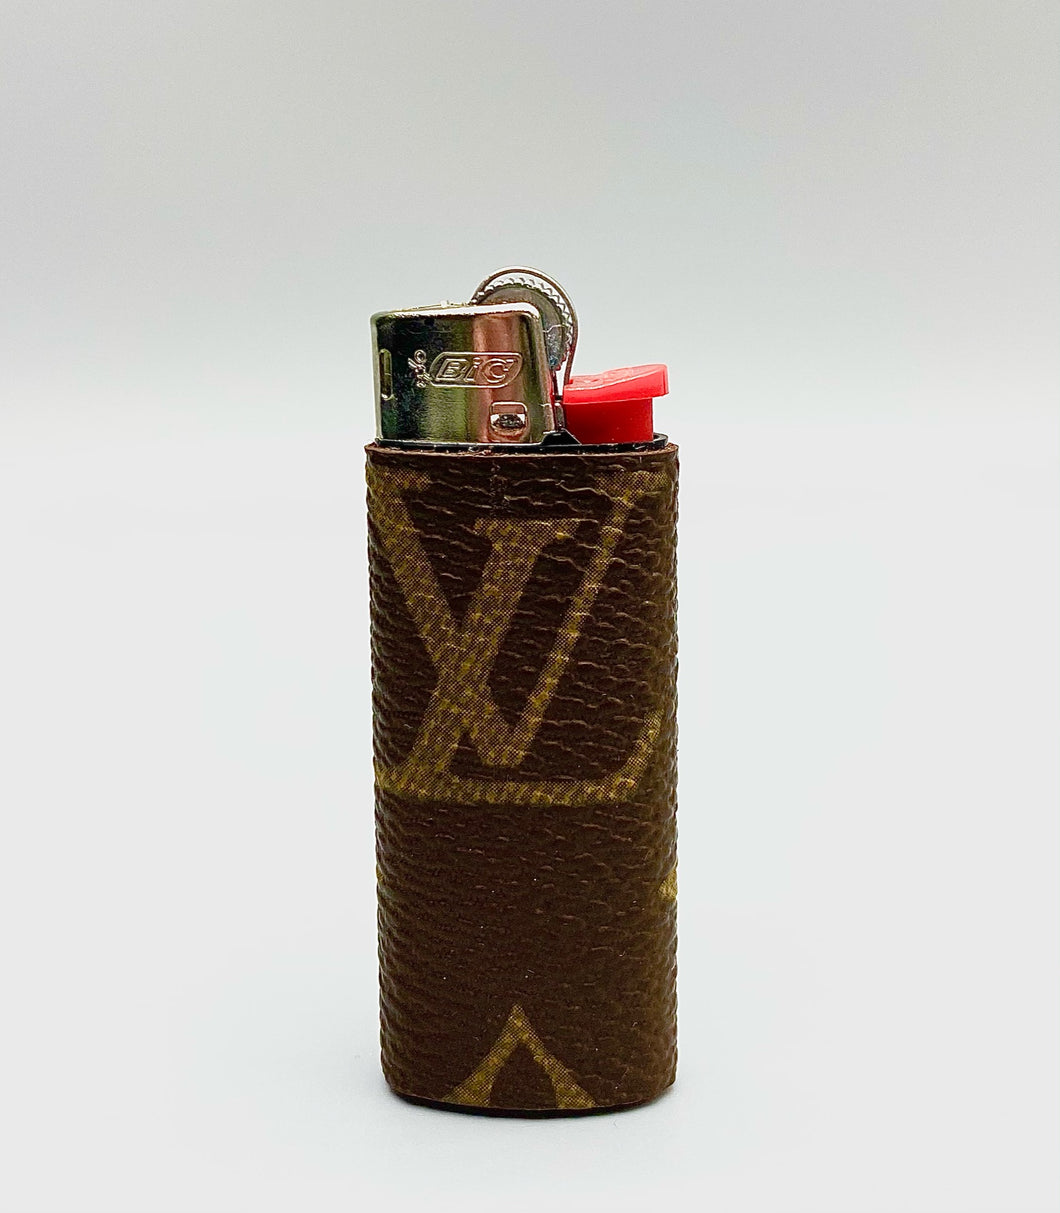 Monogram Mini Lighter